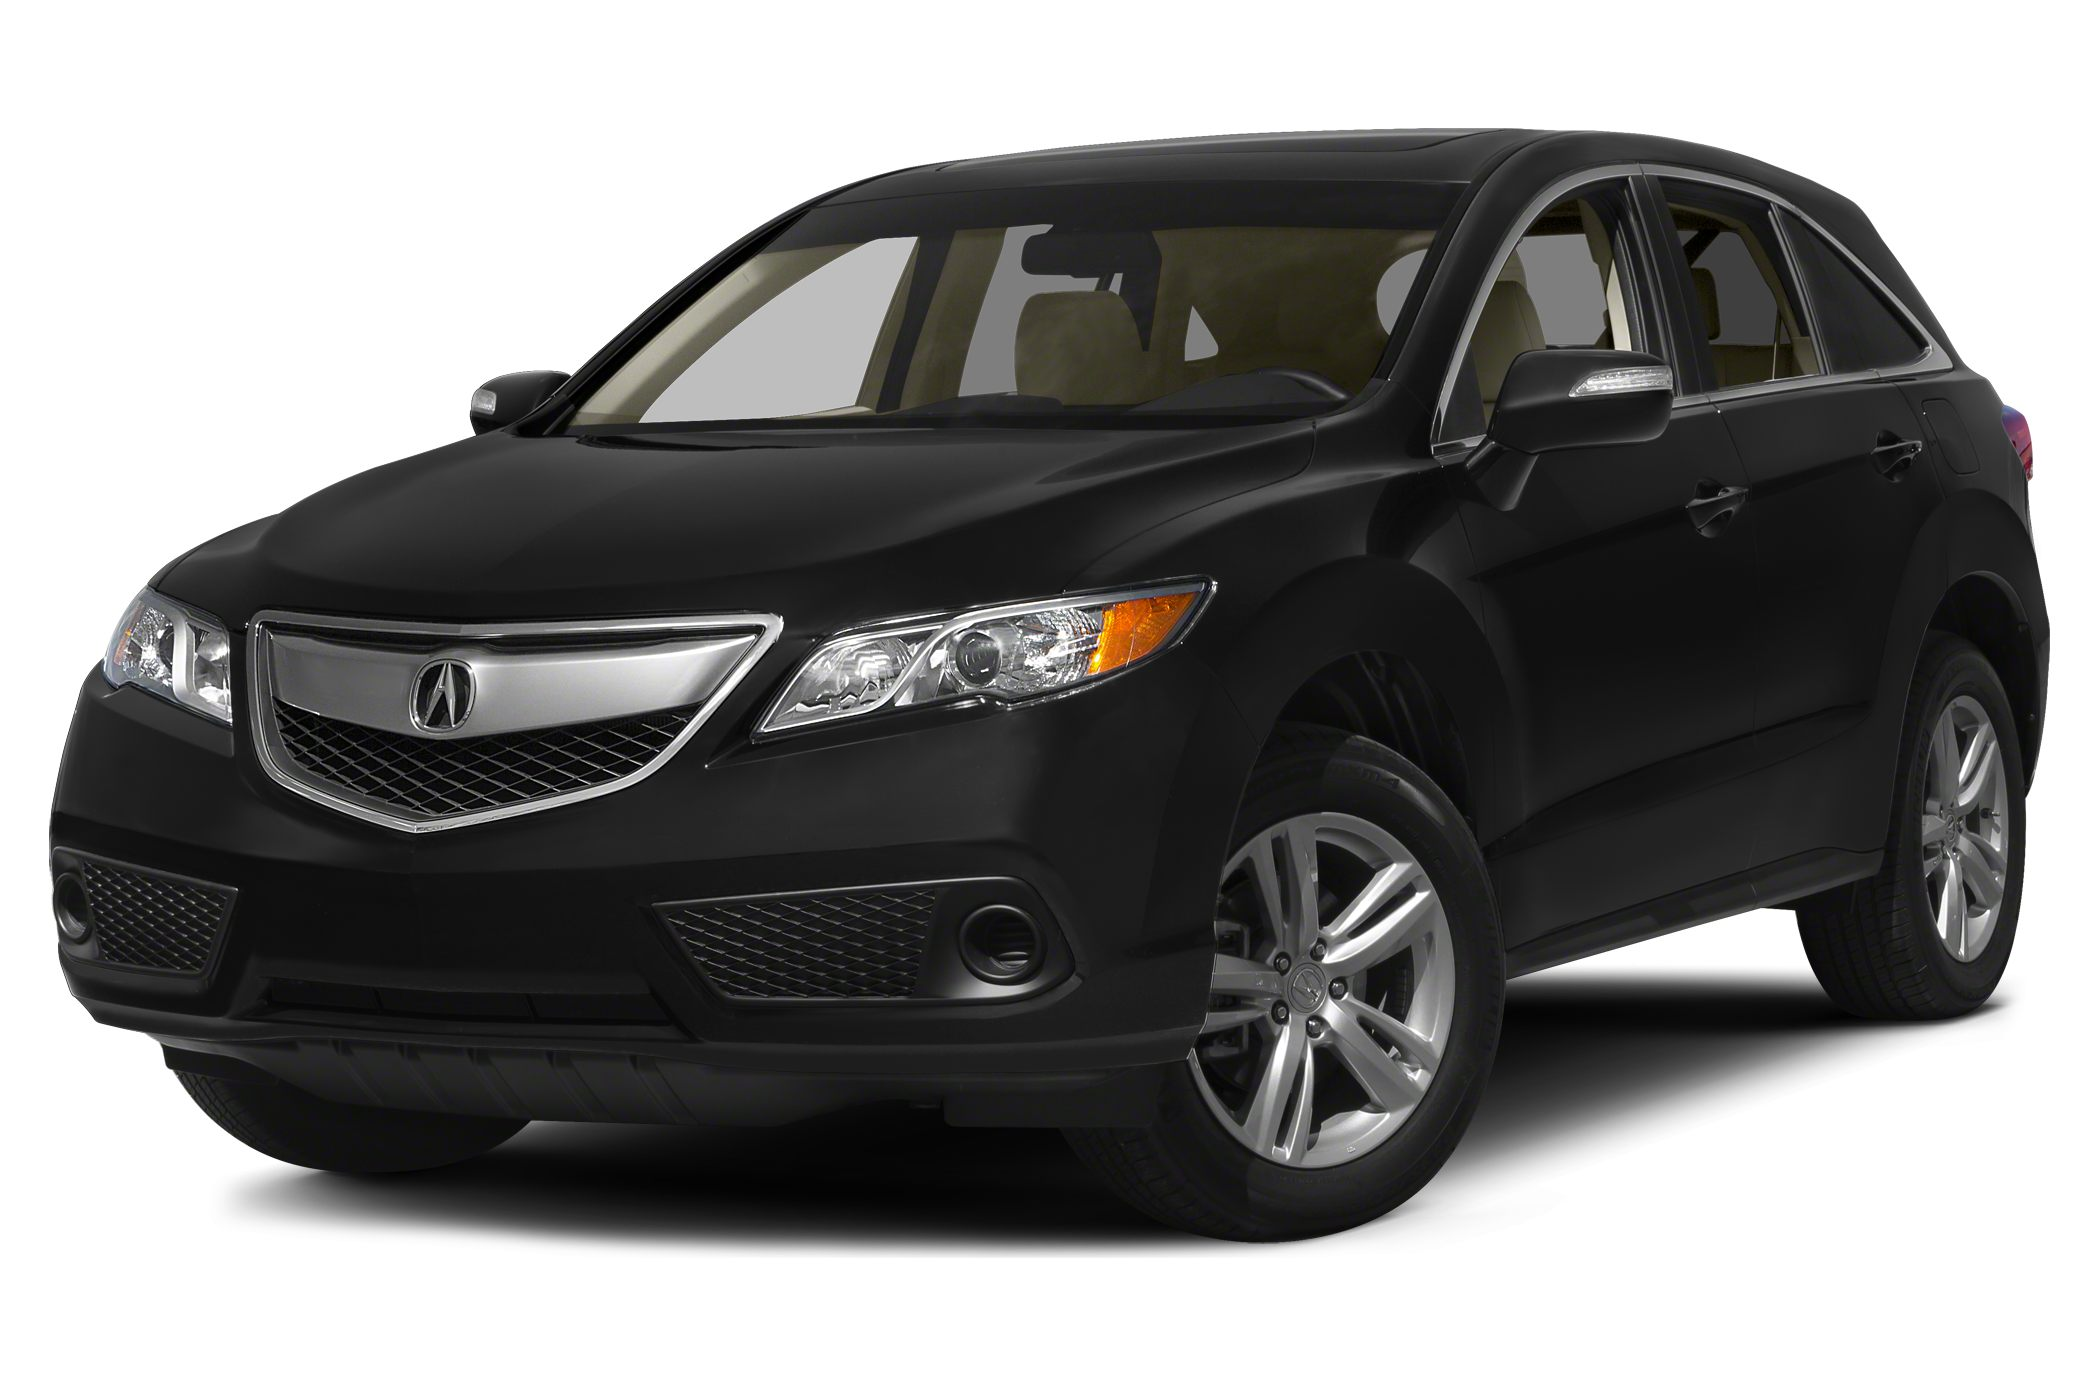 2015 Acura RDX Base SUV for sale in Gainesville for $39,715 with 0 miles.